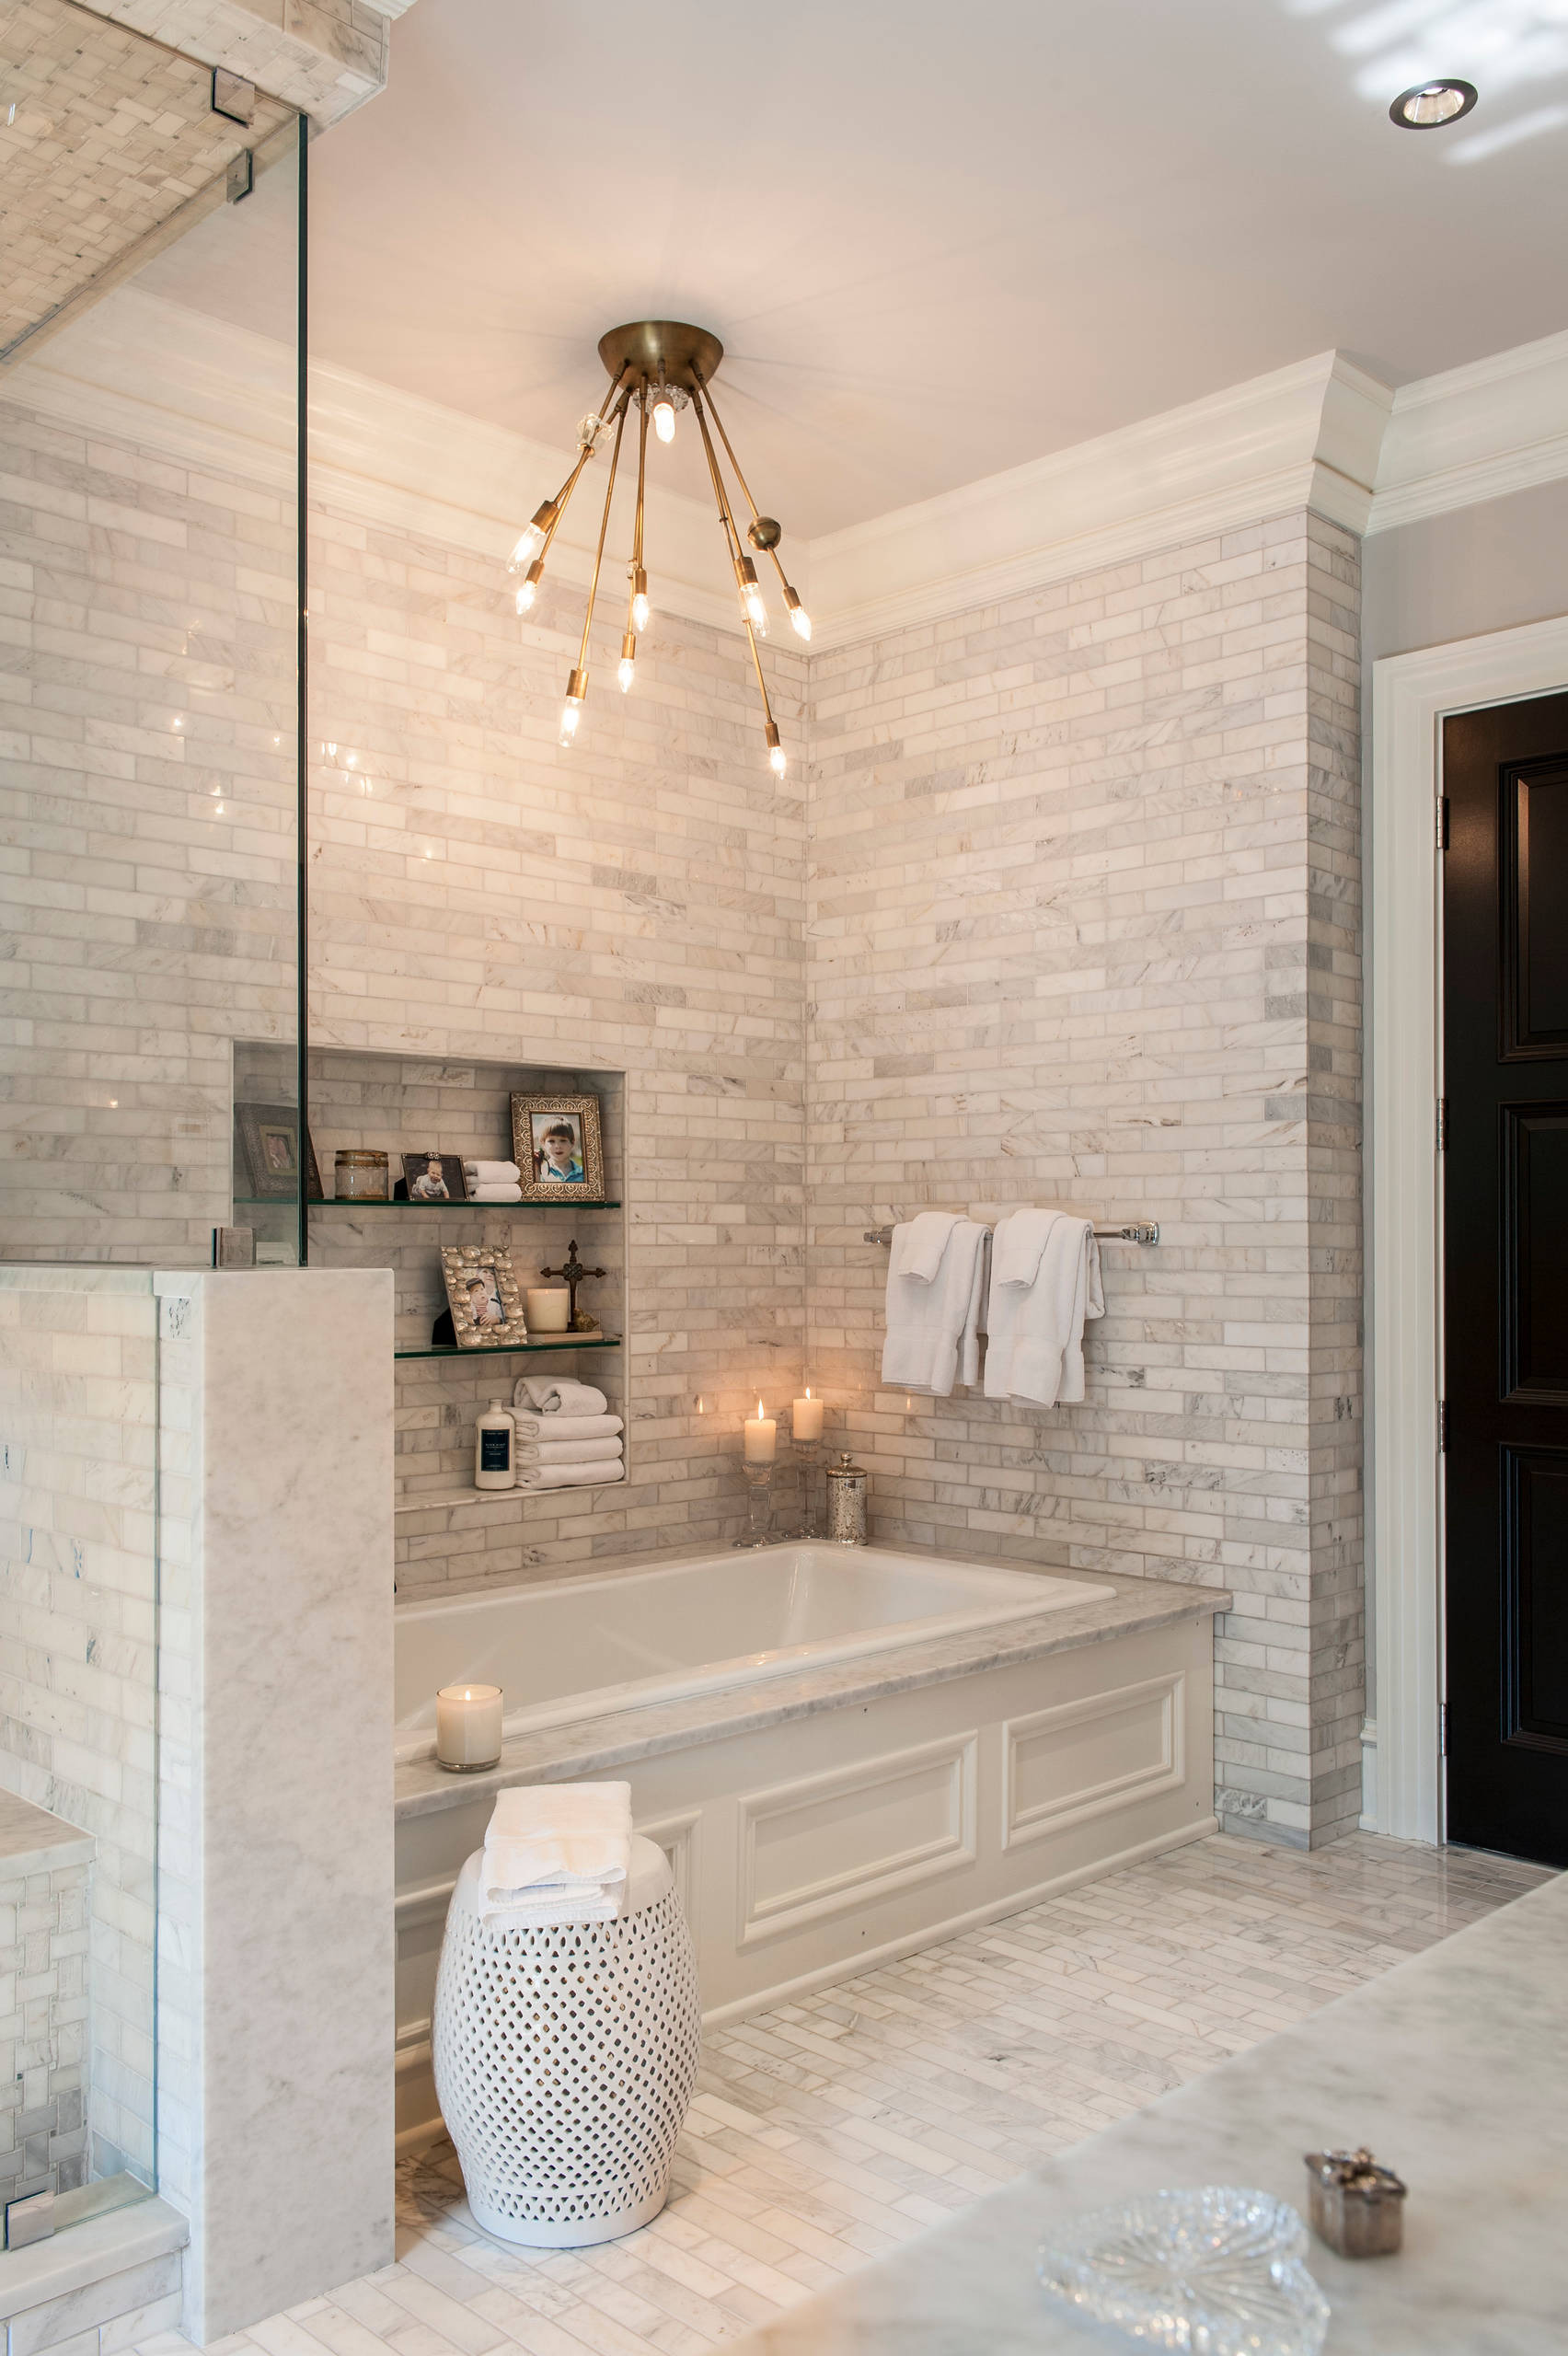 Pics Of Decorated Bathrooms New Hot for 2016 Decorating Your Bathroom In Silver Hues Our